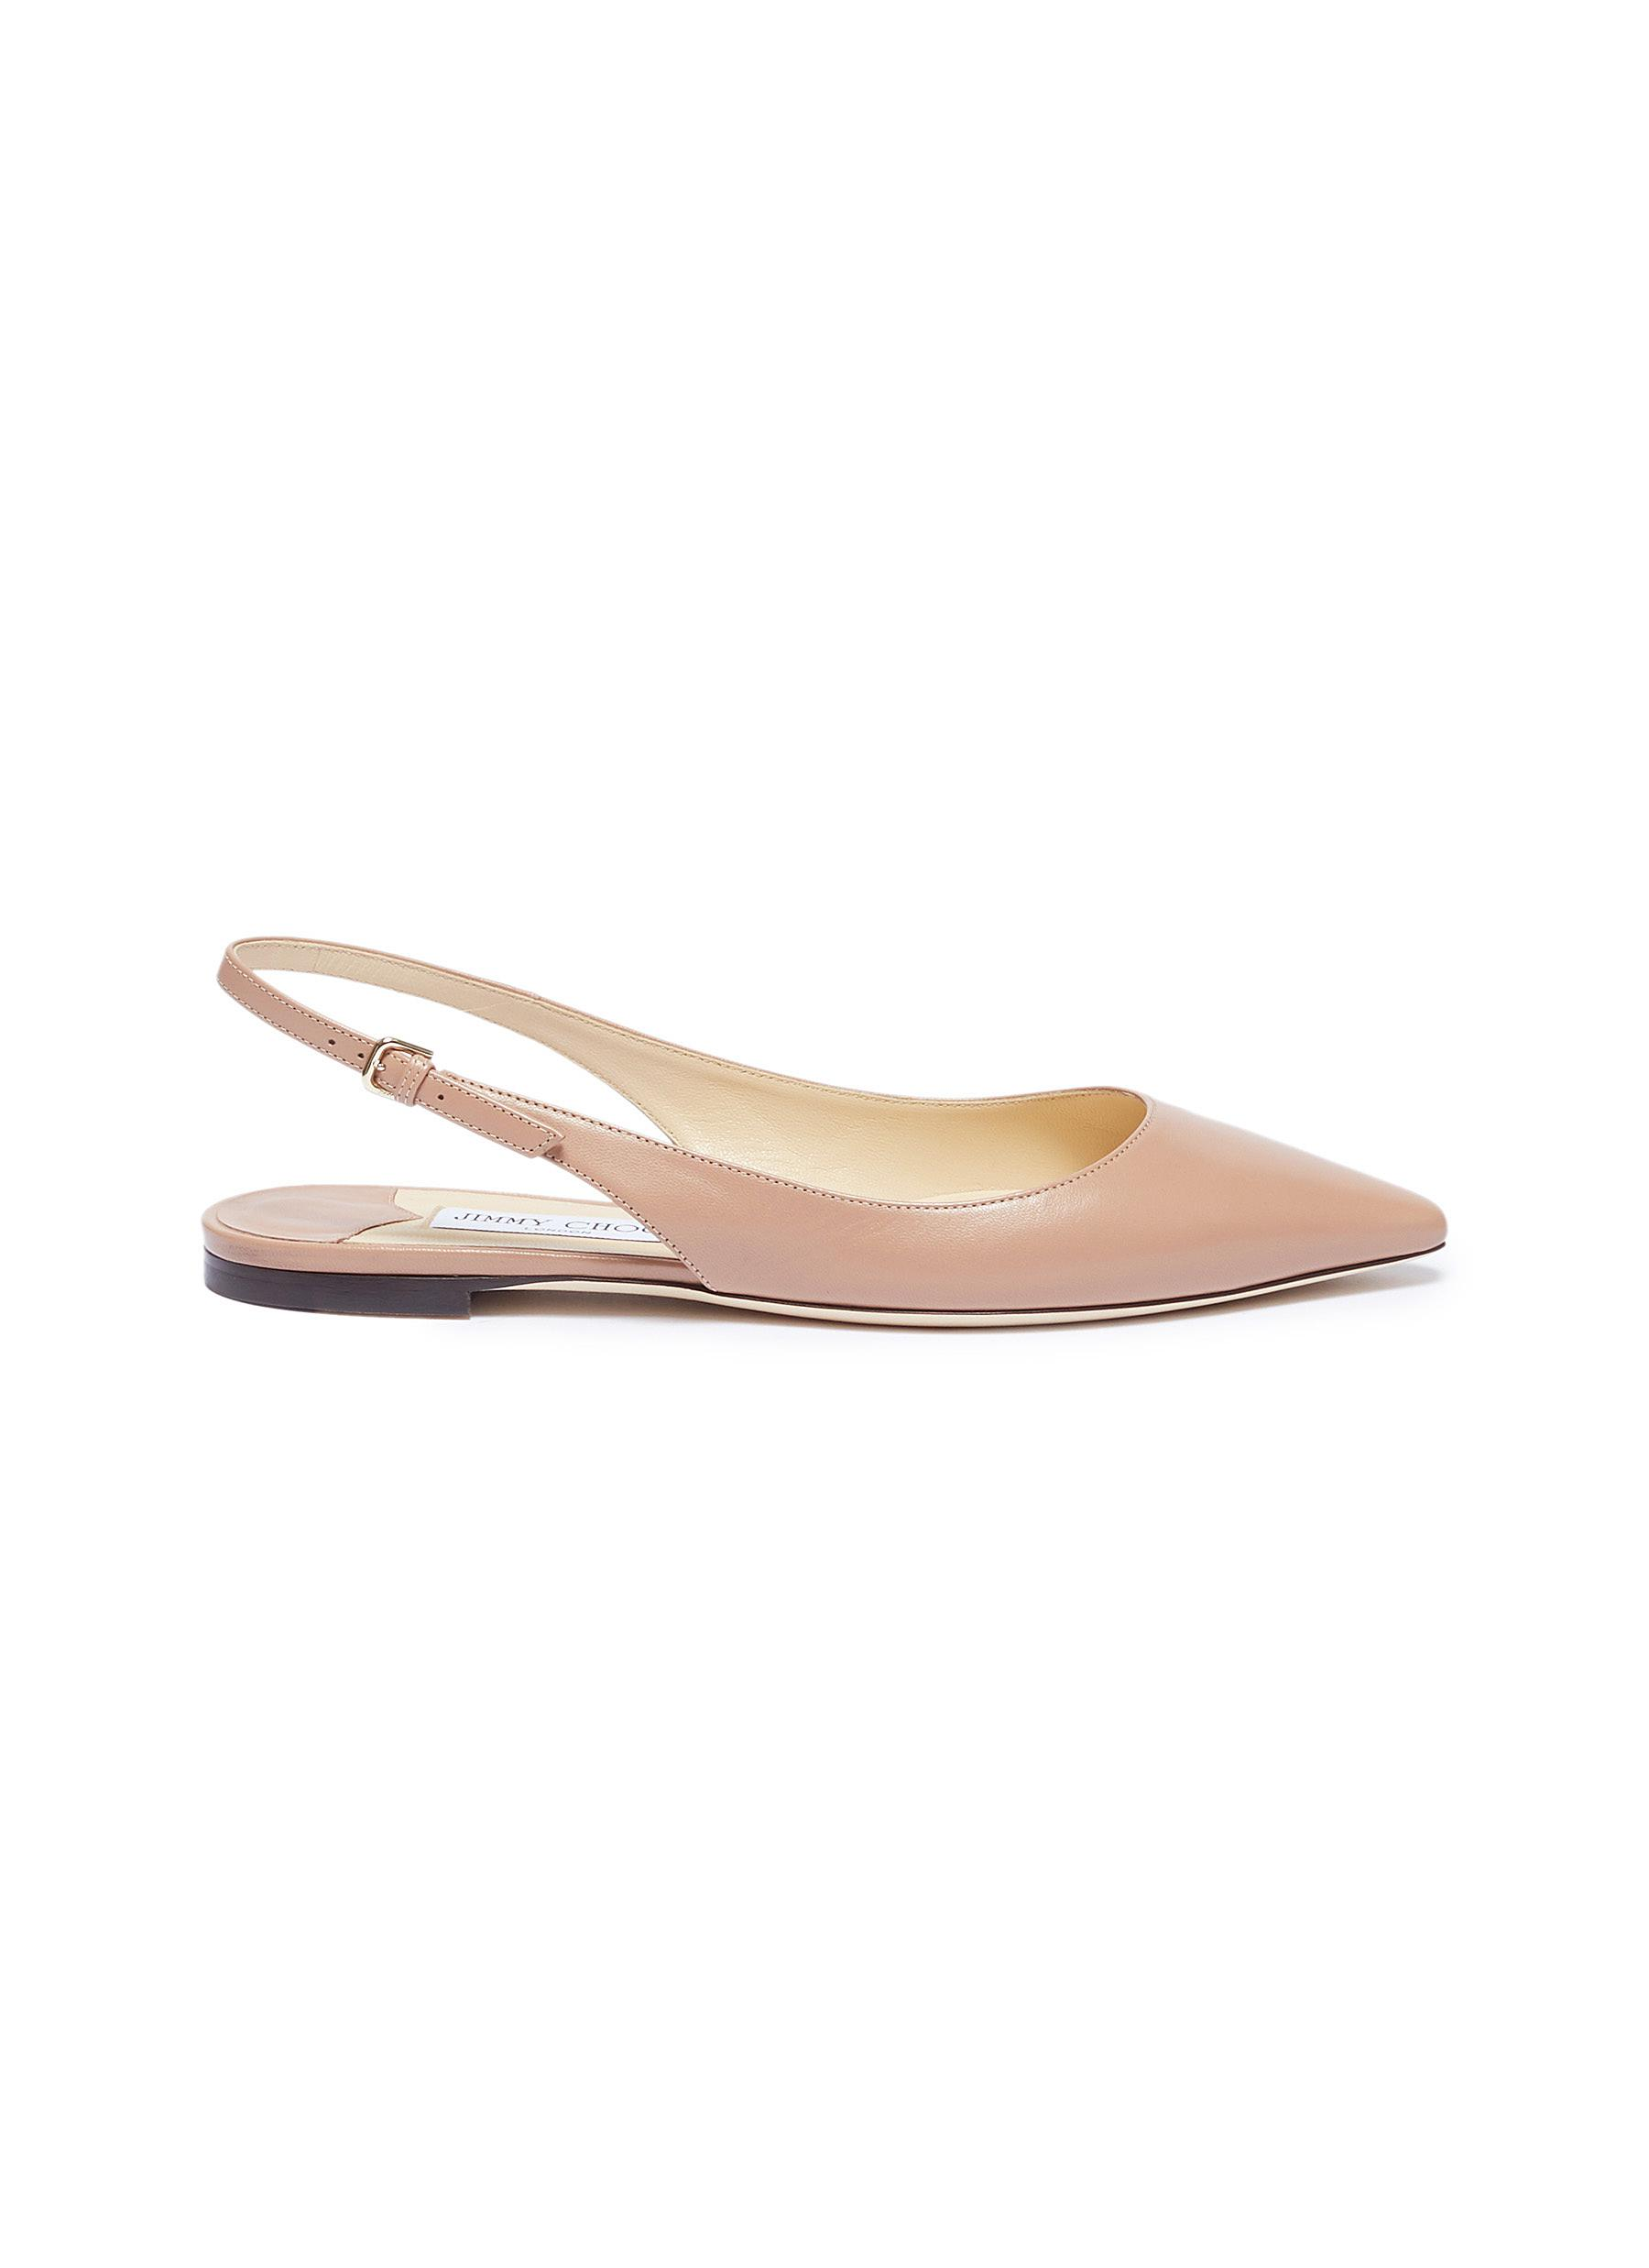 Erin leather slingback skimmer flats by Jimmy Choo